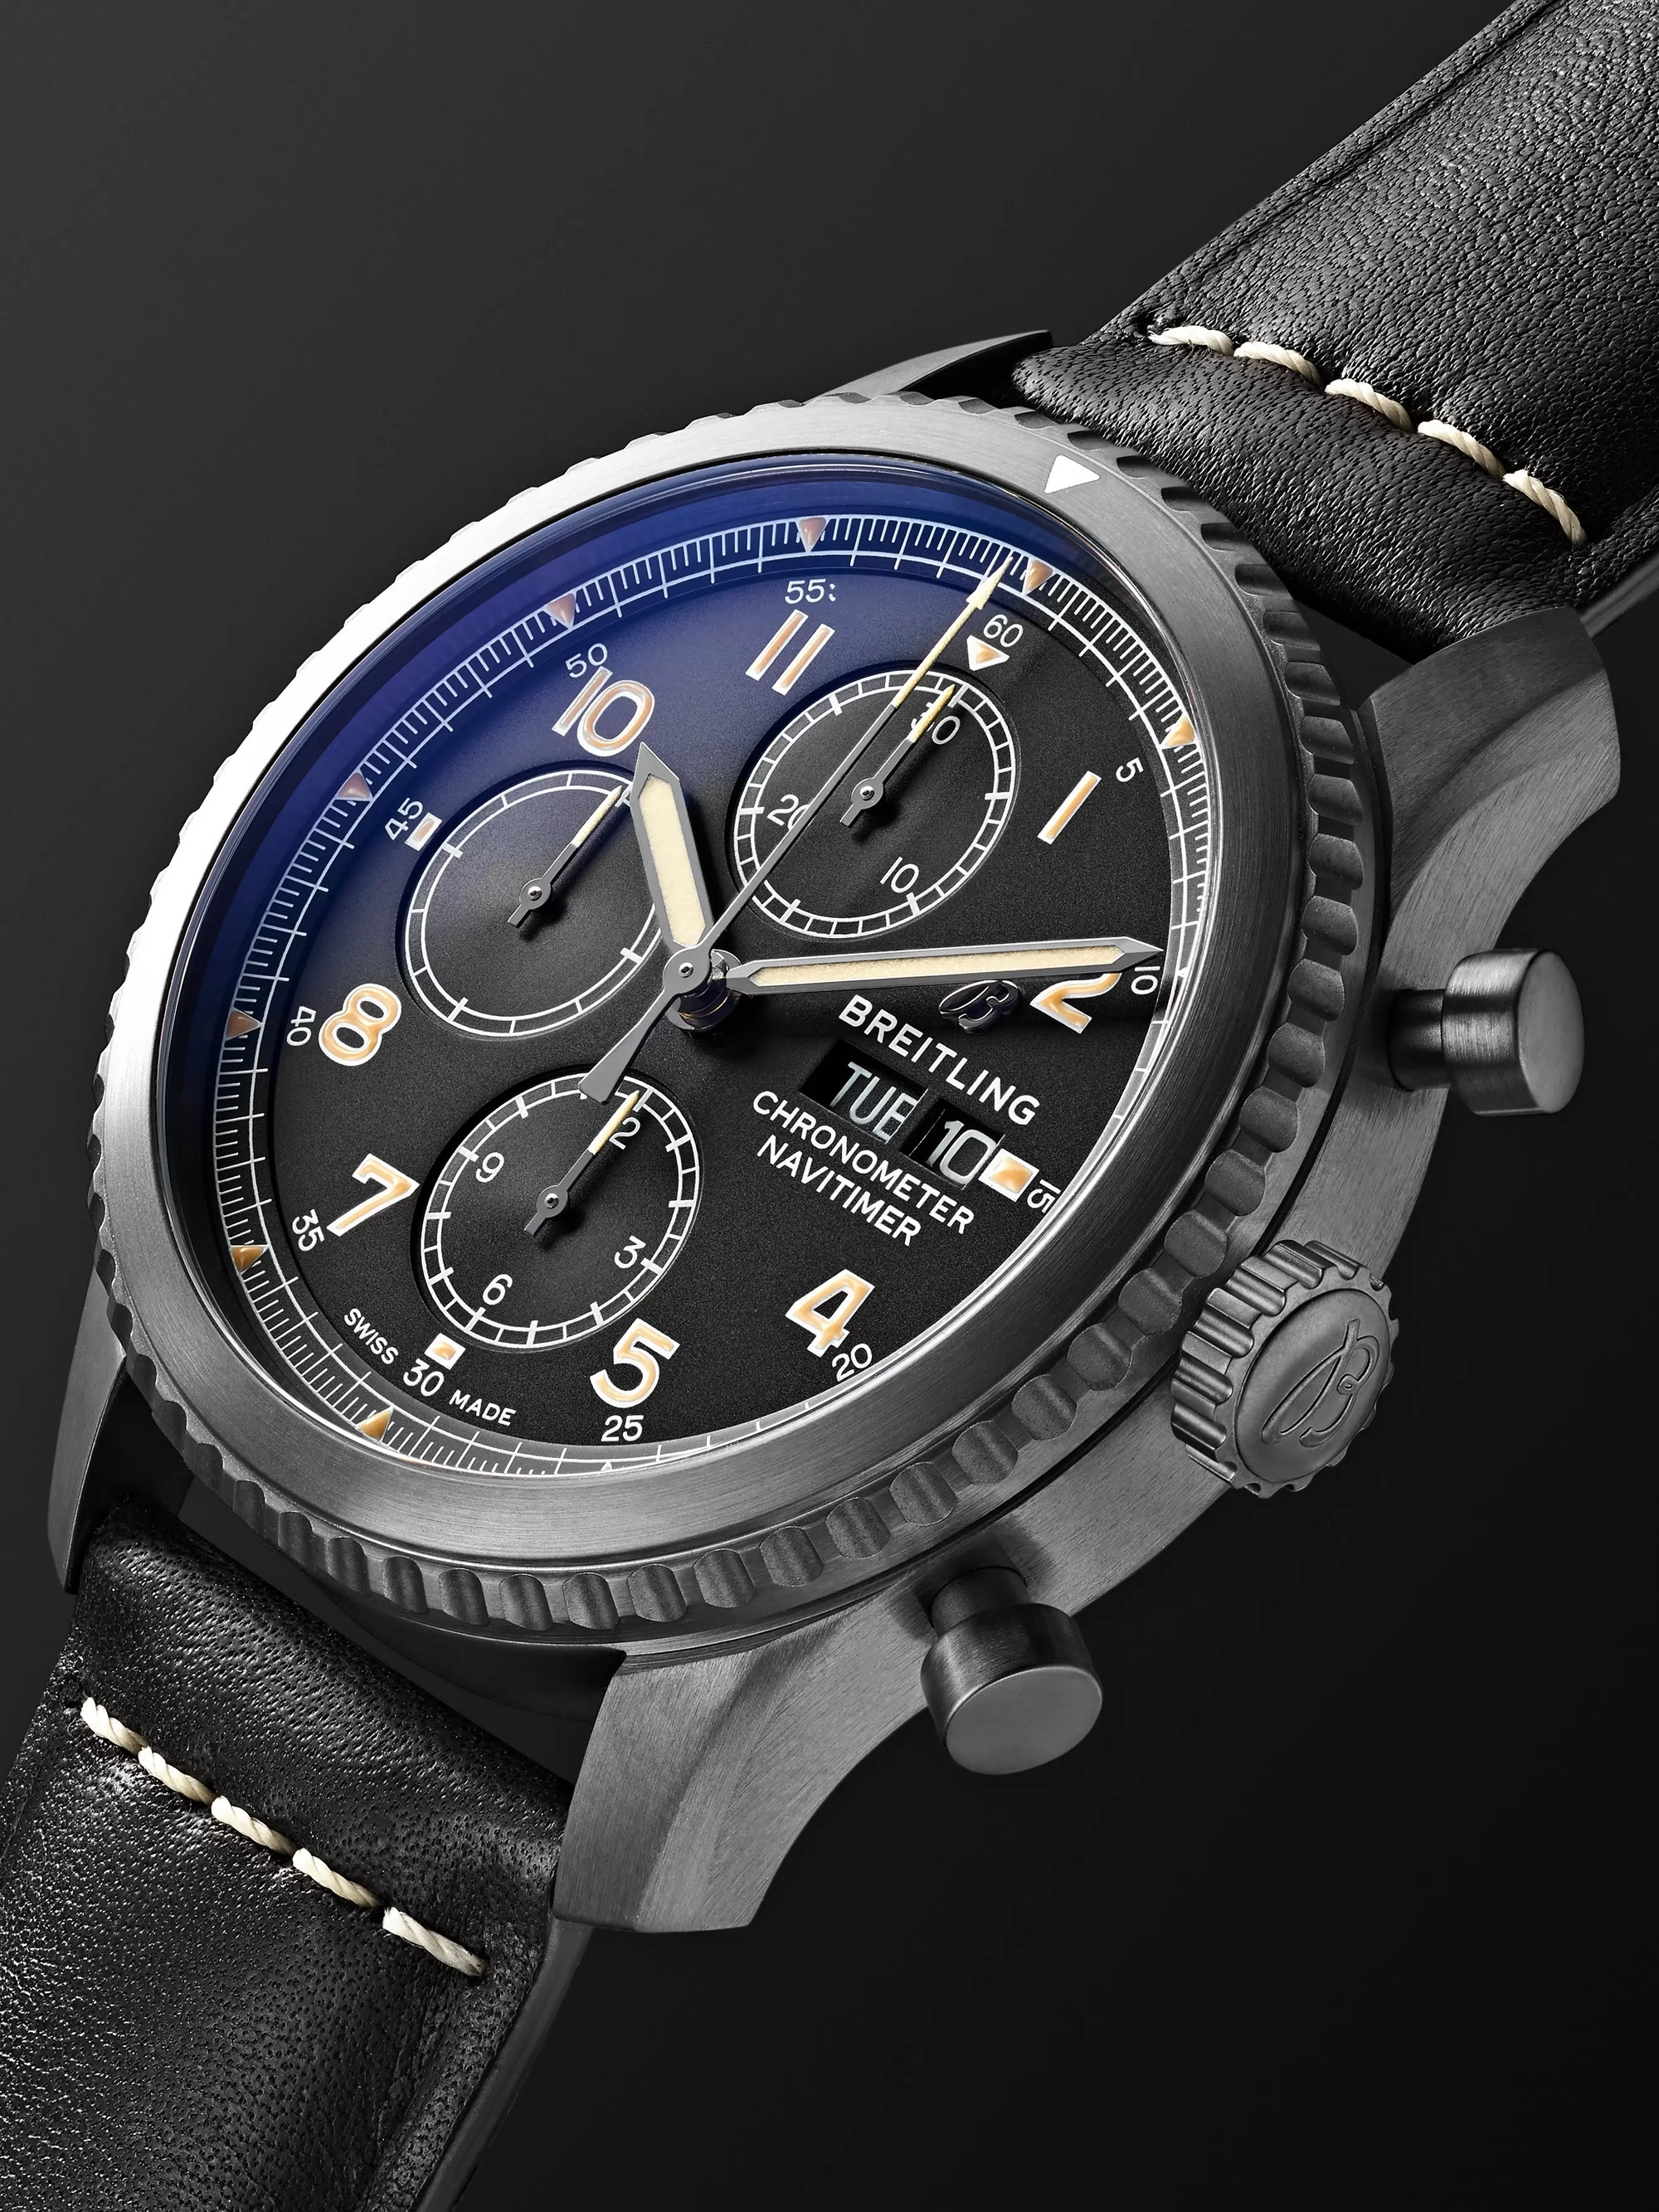 Breitling Navitimer 8 Chronograph 43mm Black Steel and Leather Watch